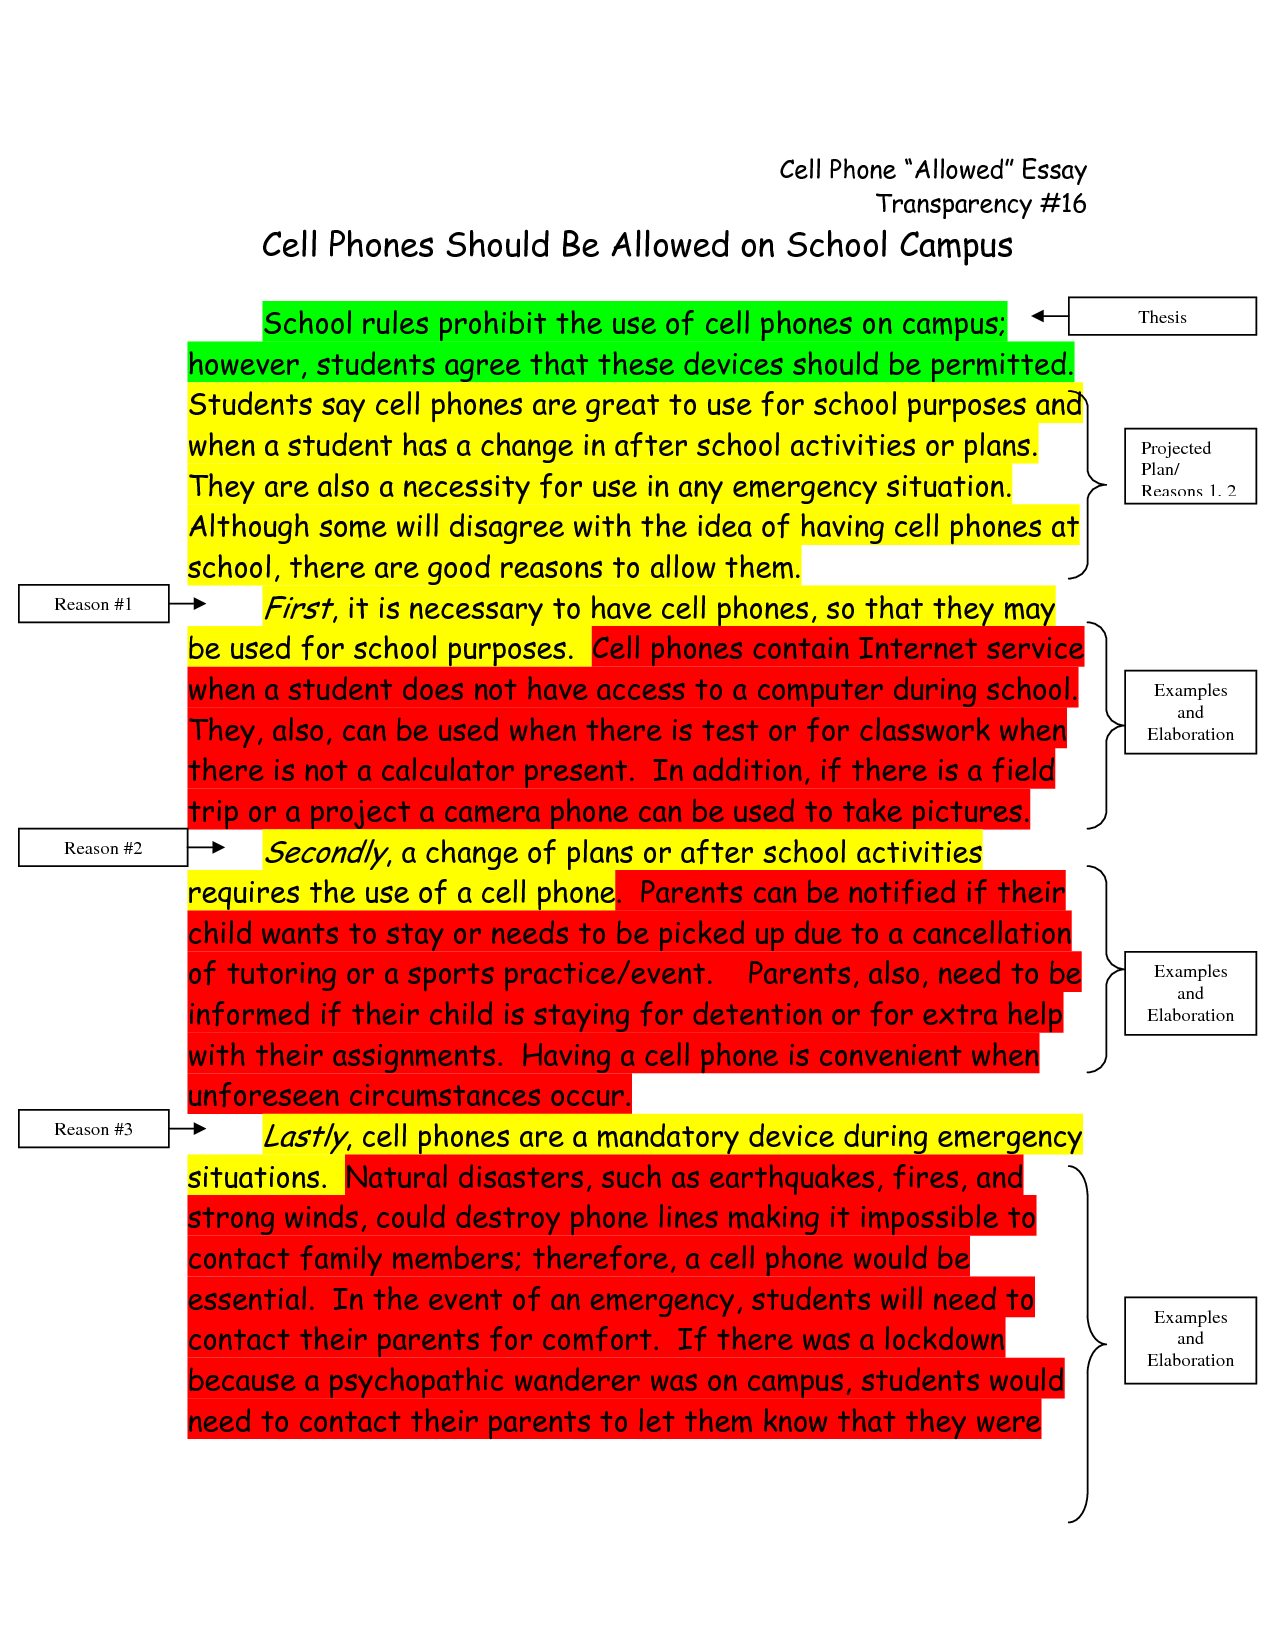 should cellphones be allowed in school argumentative essay Persuasive speech persuasive speech  should student be allowed to use cellphones in school self-control students learn how to be responsible wisely  eliminates books, handouts, and essays solve answers more quickly combination of tools that will be needed throughout academic years.